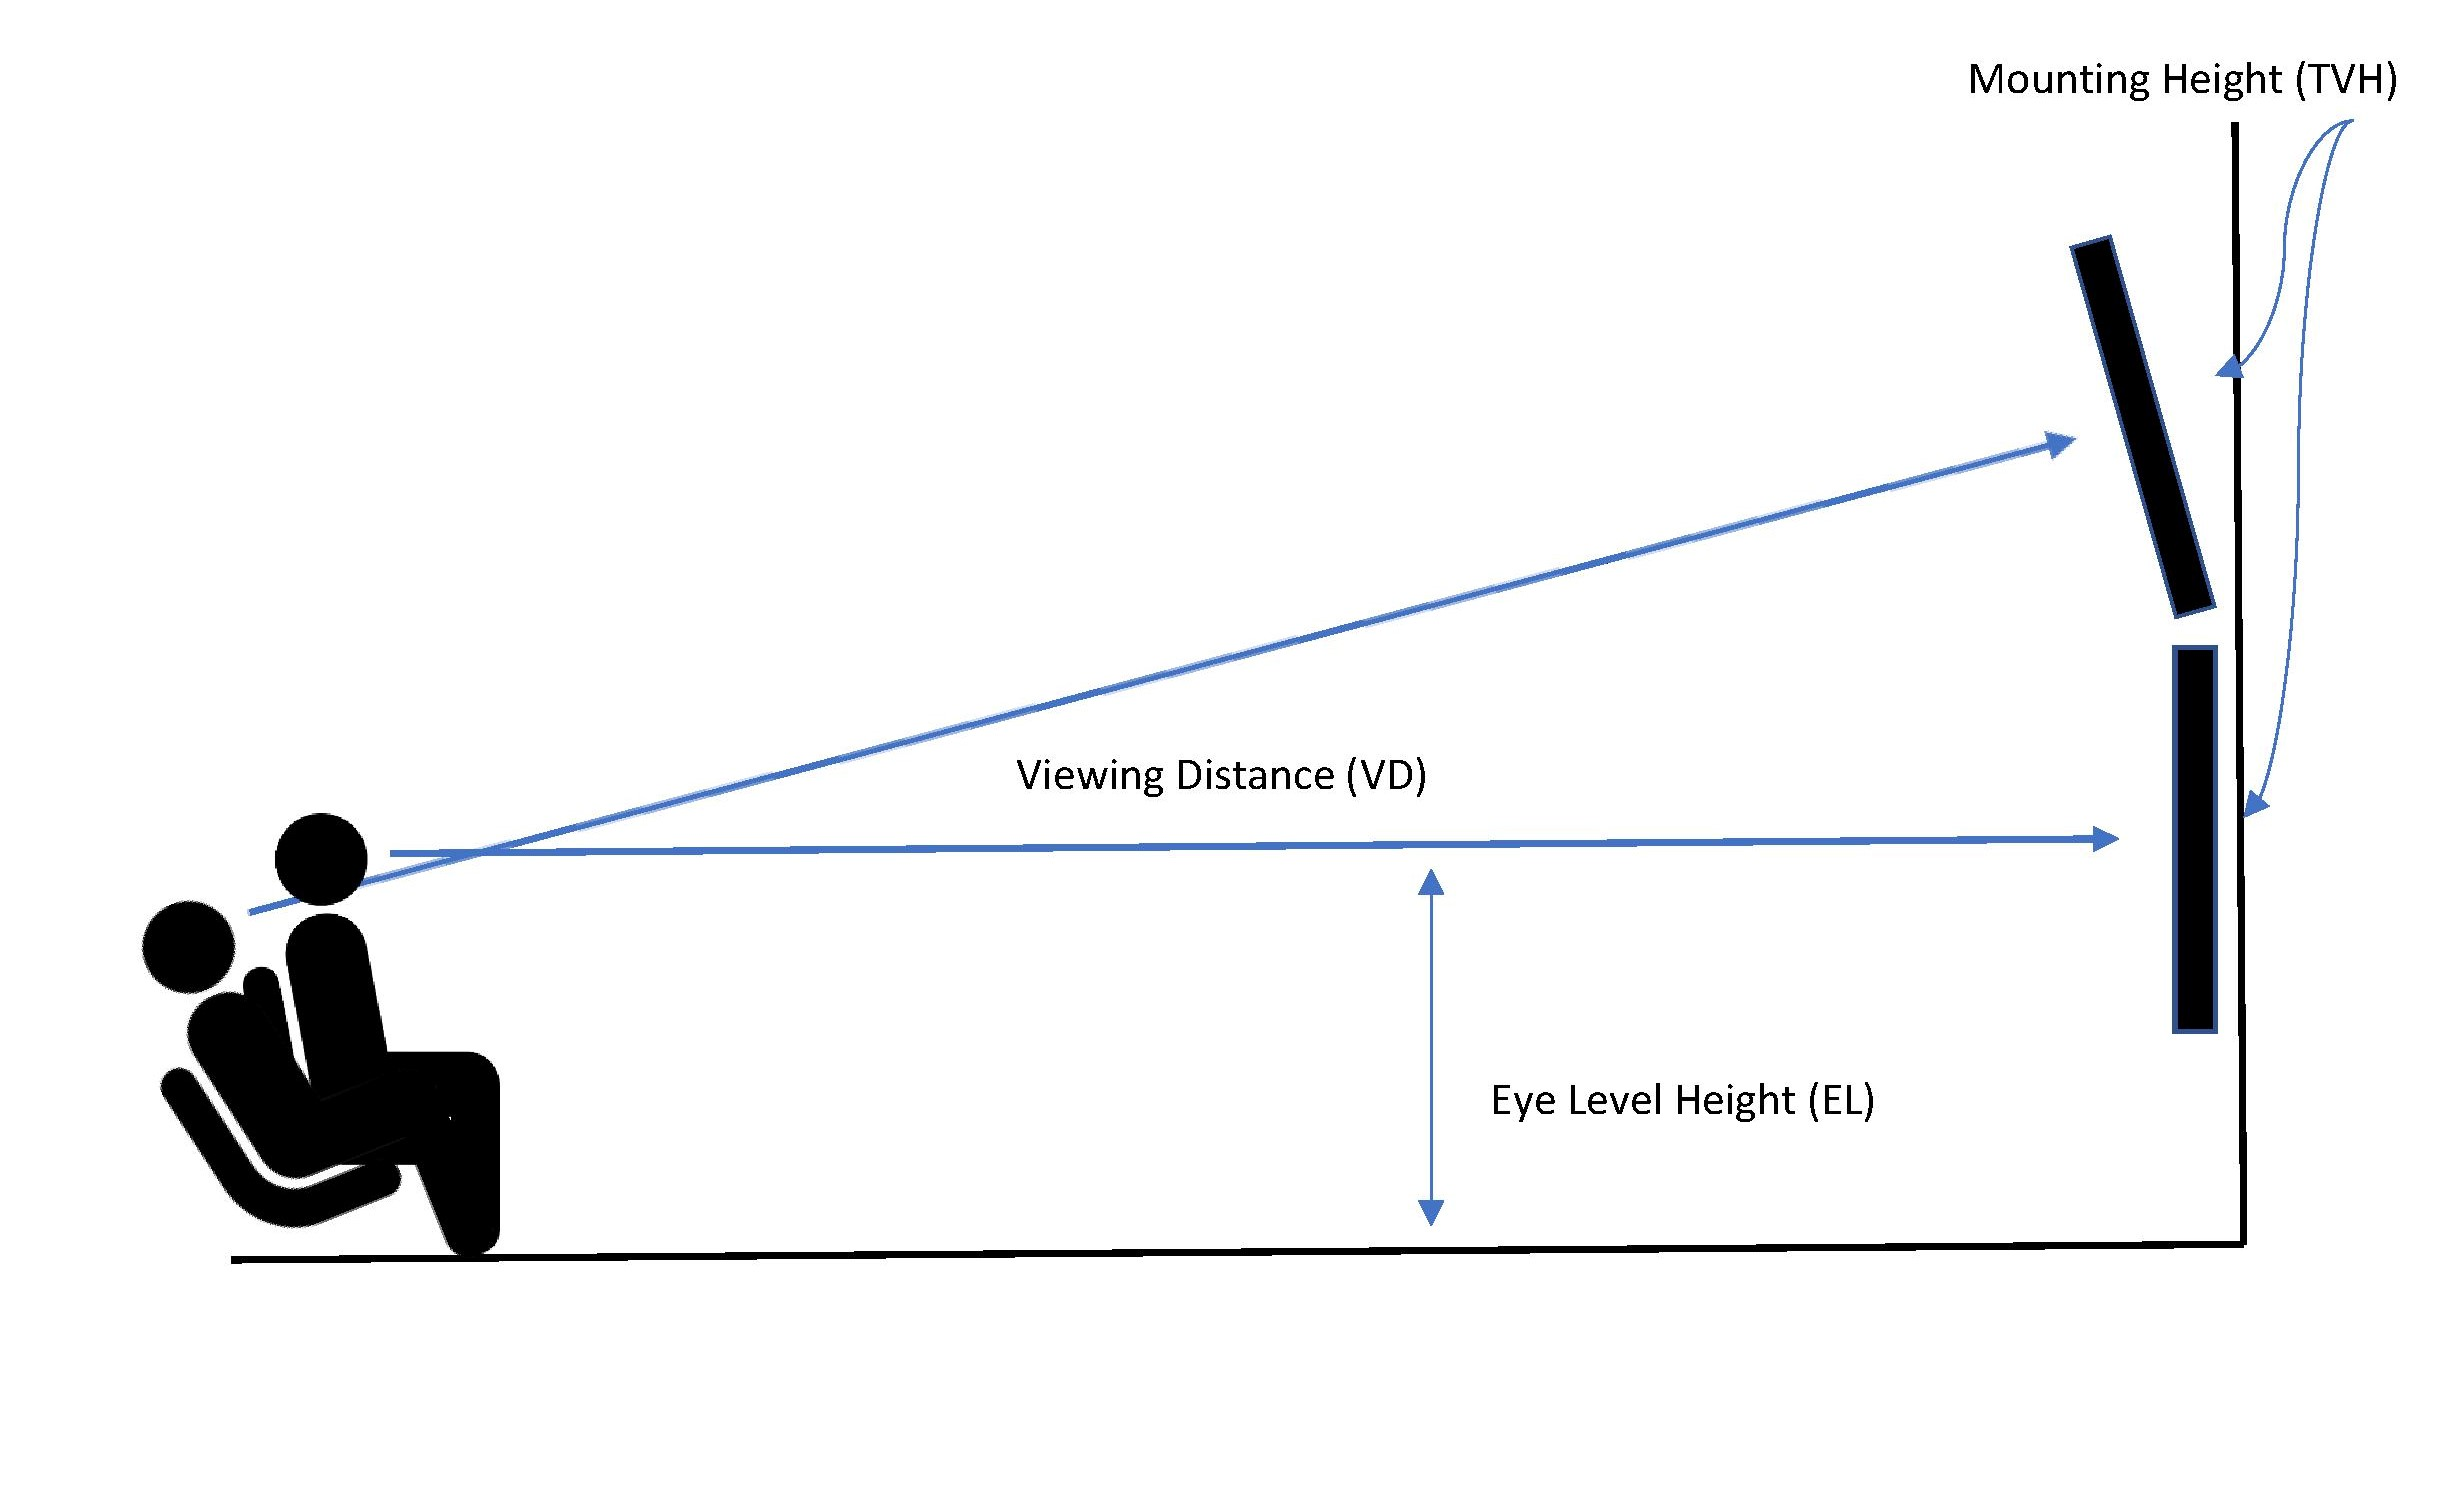 KEF - Calculating Proper TV Height